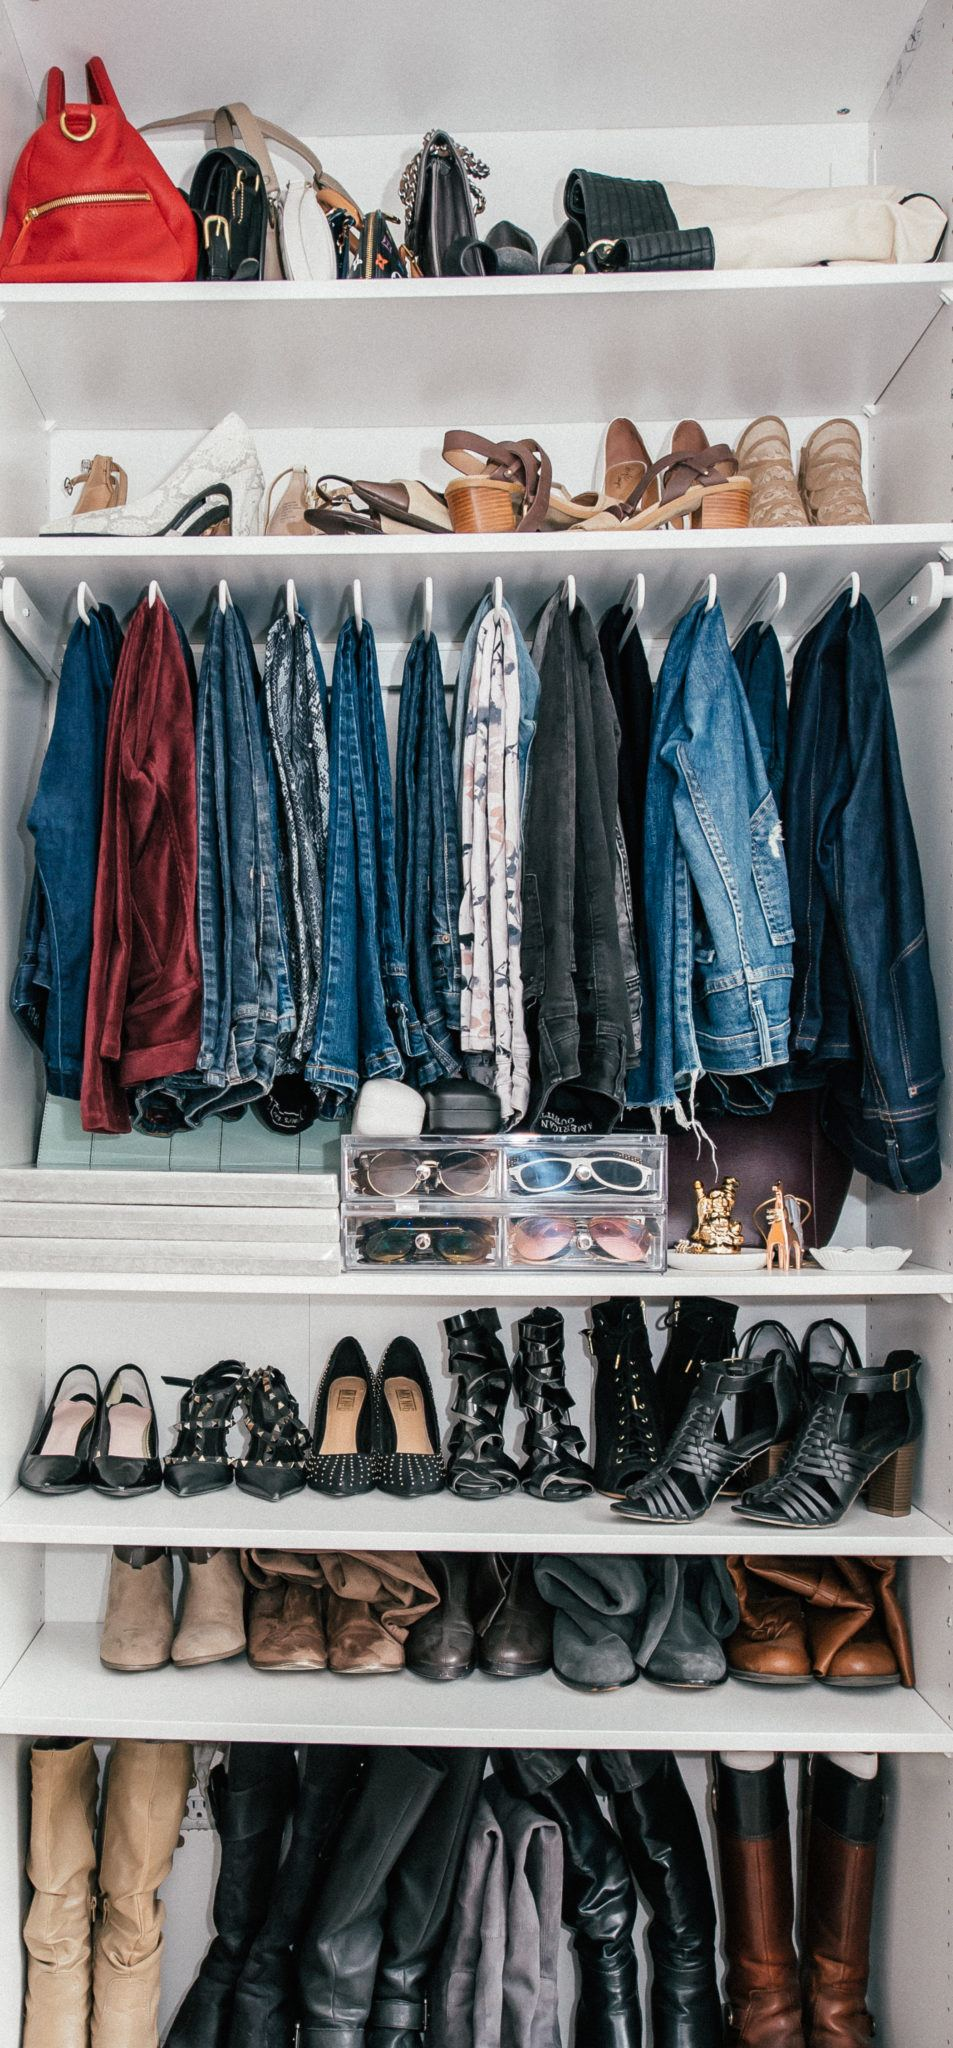 pictures new closet pax sliding shoe pic best komplement wardrobe see rack ikea must tall